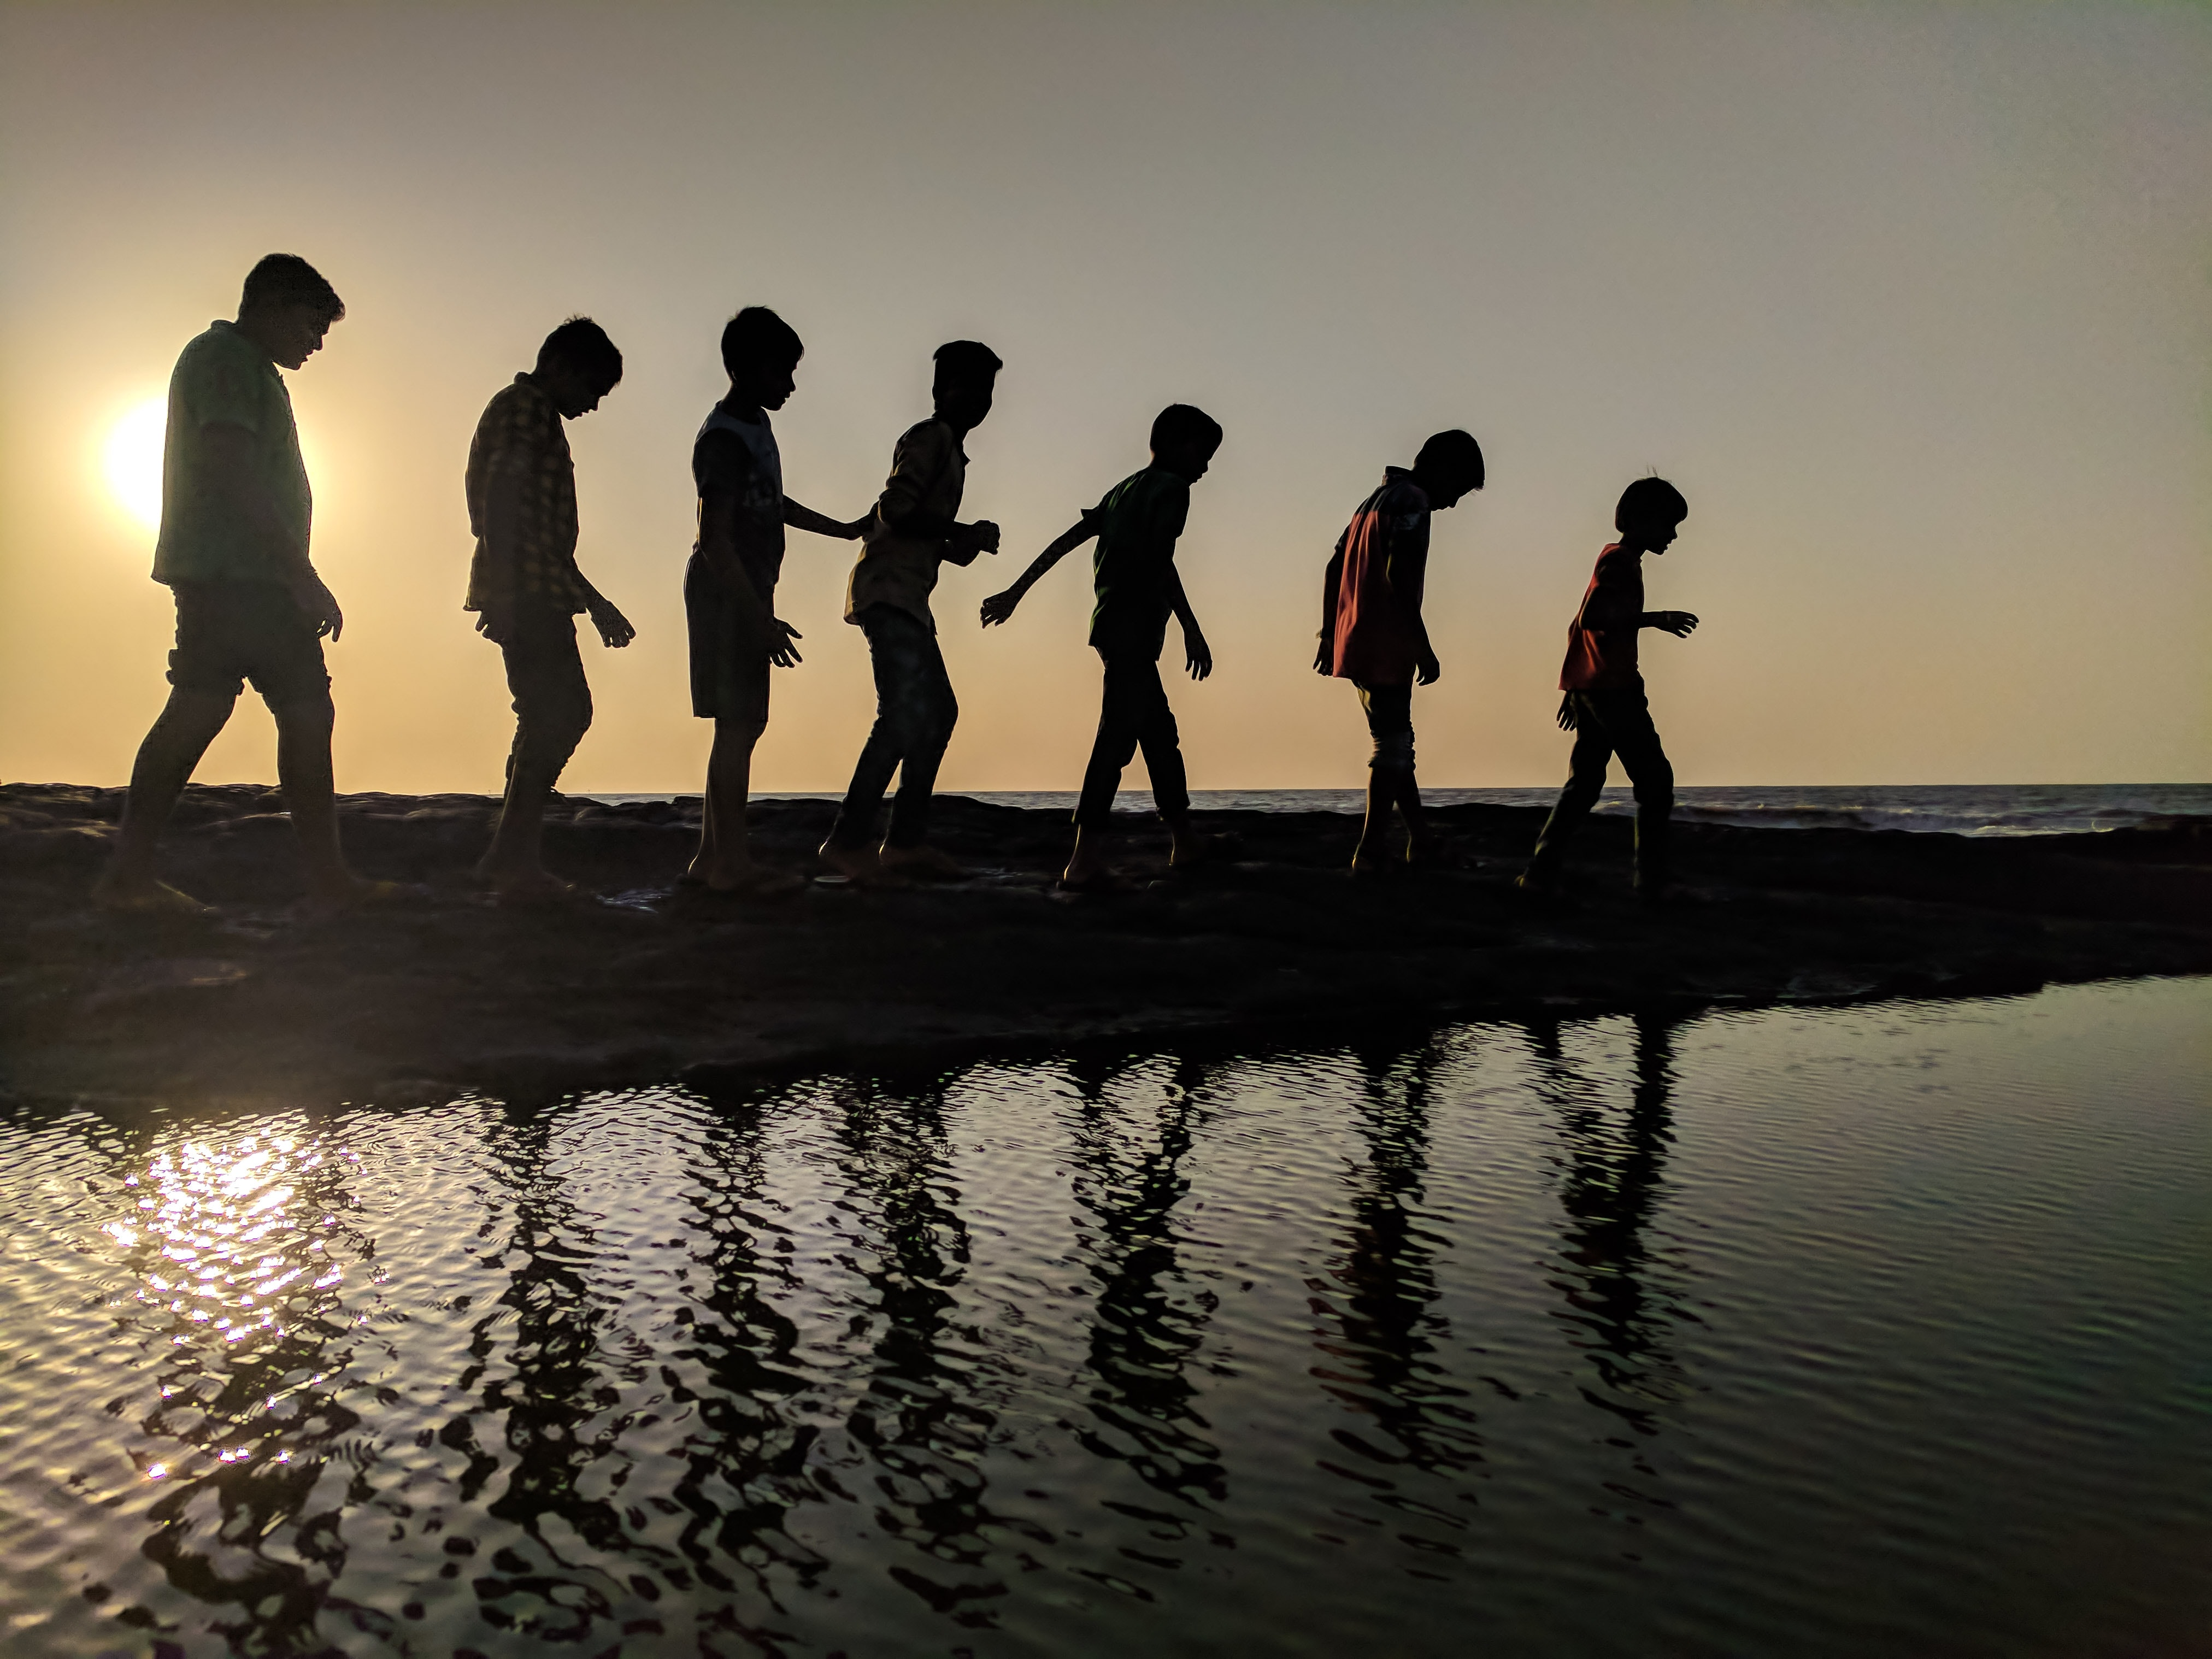 Group of children walking near body of water silhouette photography